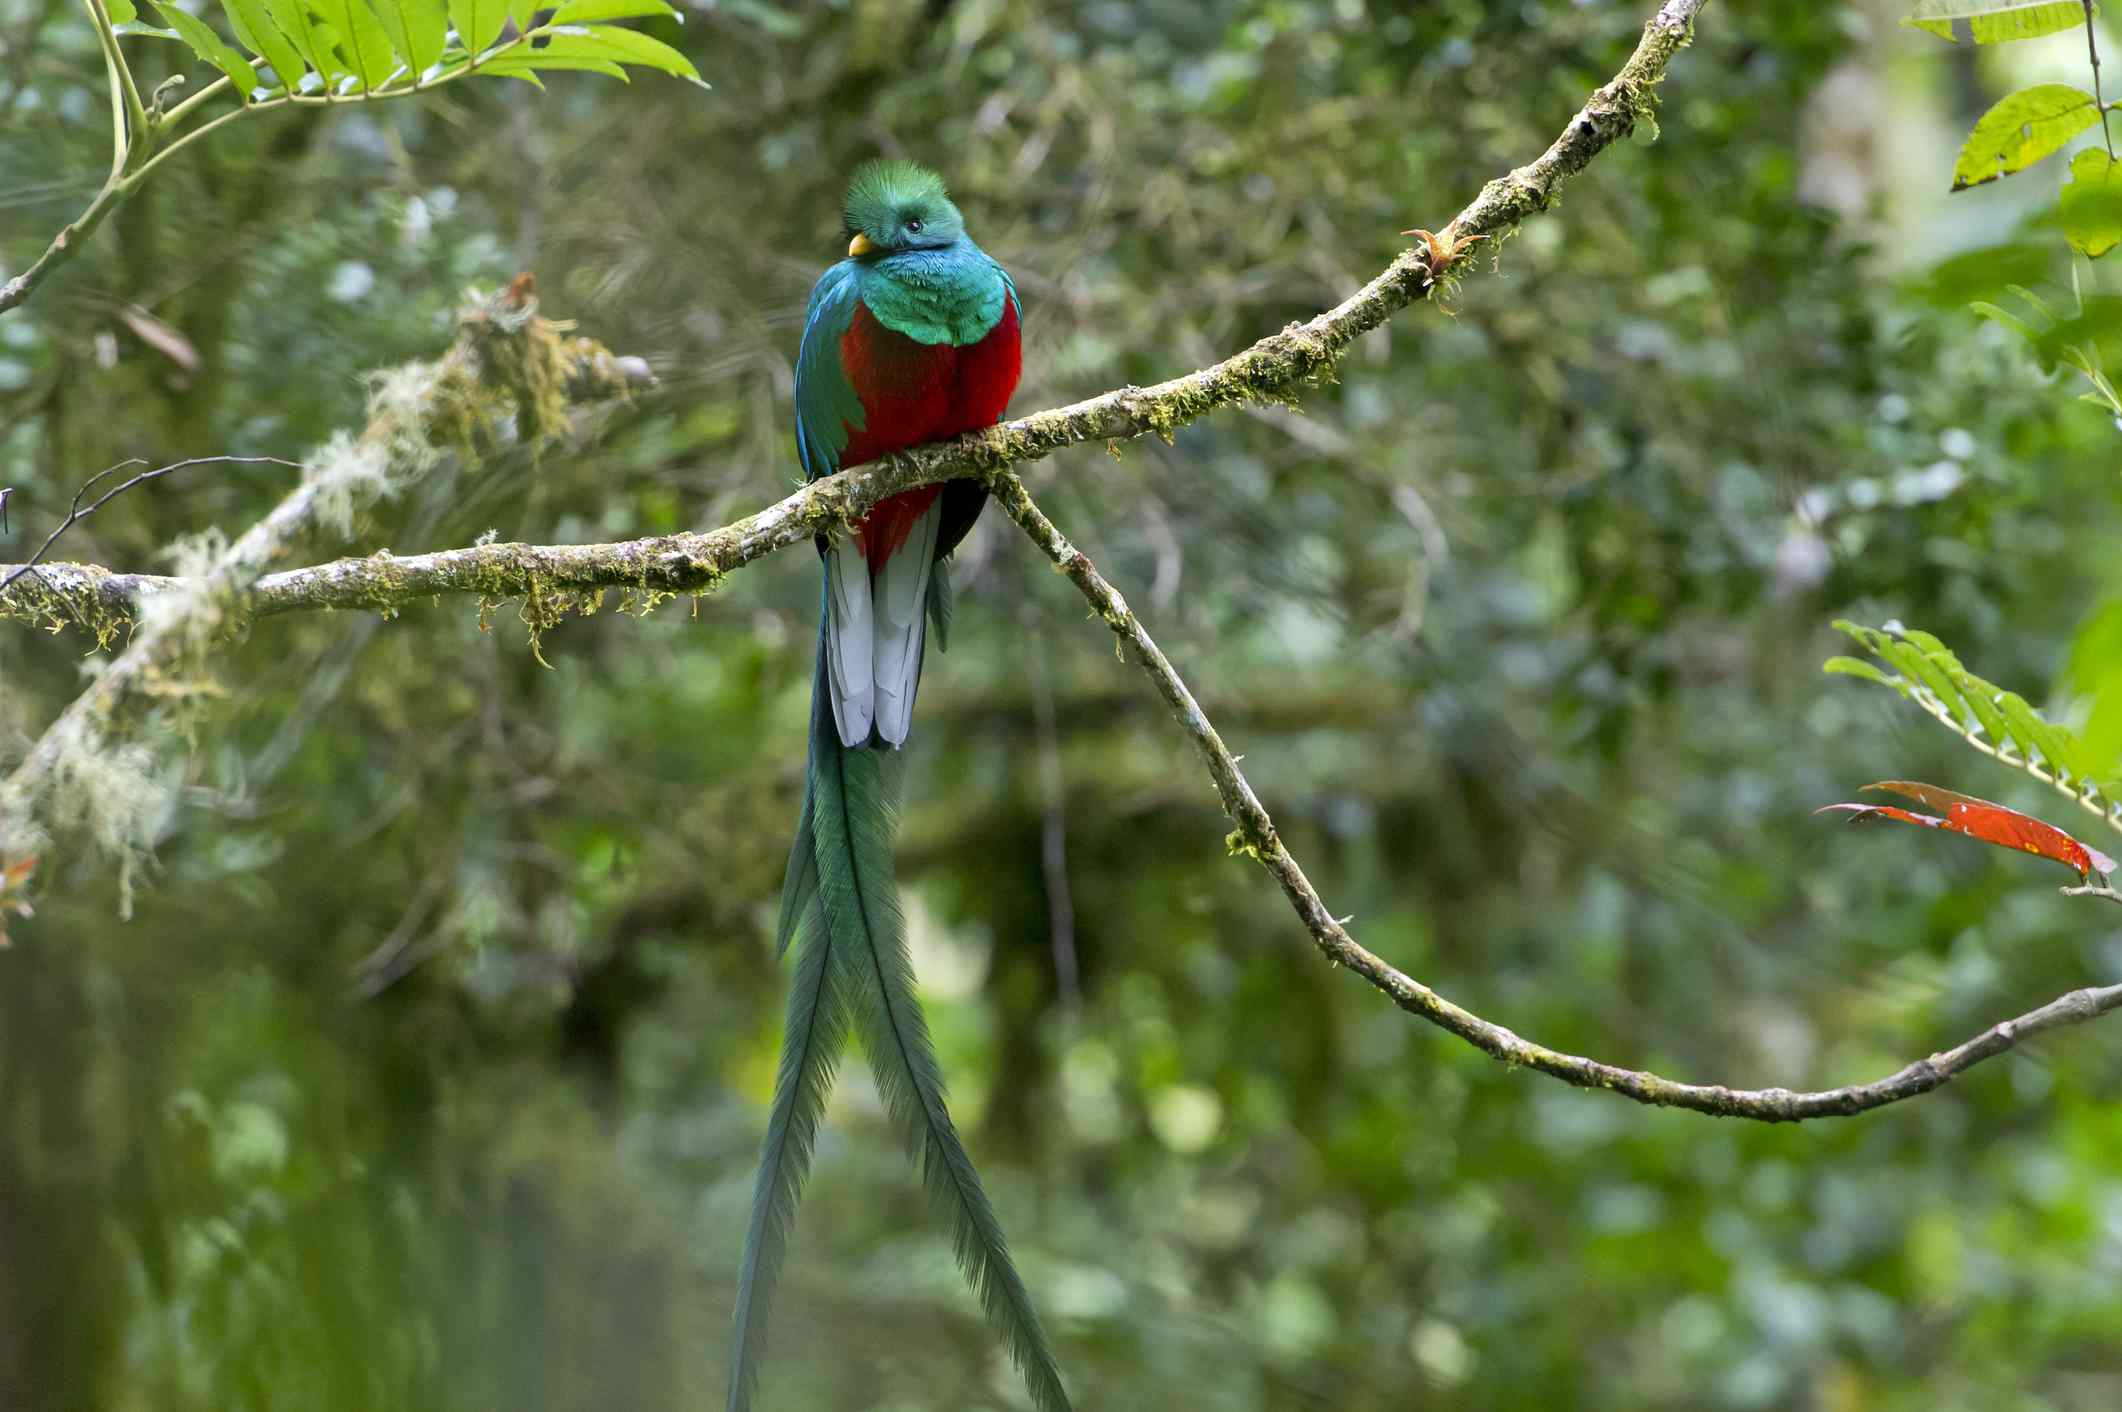 Resplendent quetzal with bright turquoise and red plumage perches in tree